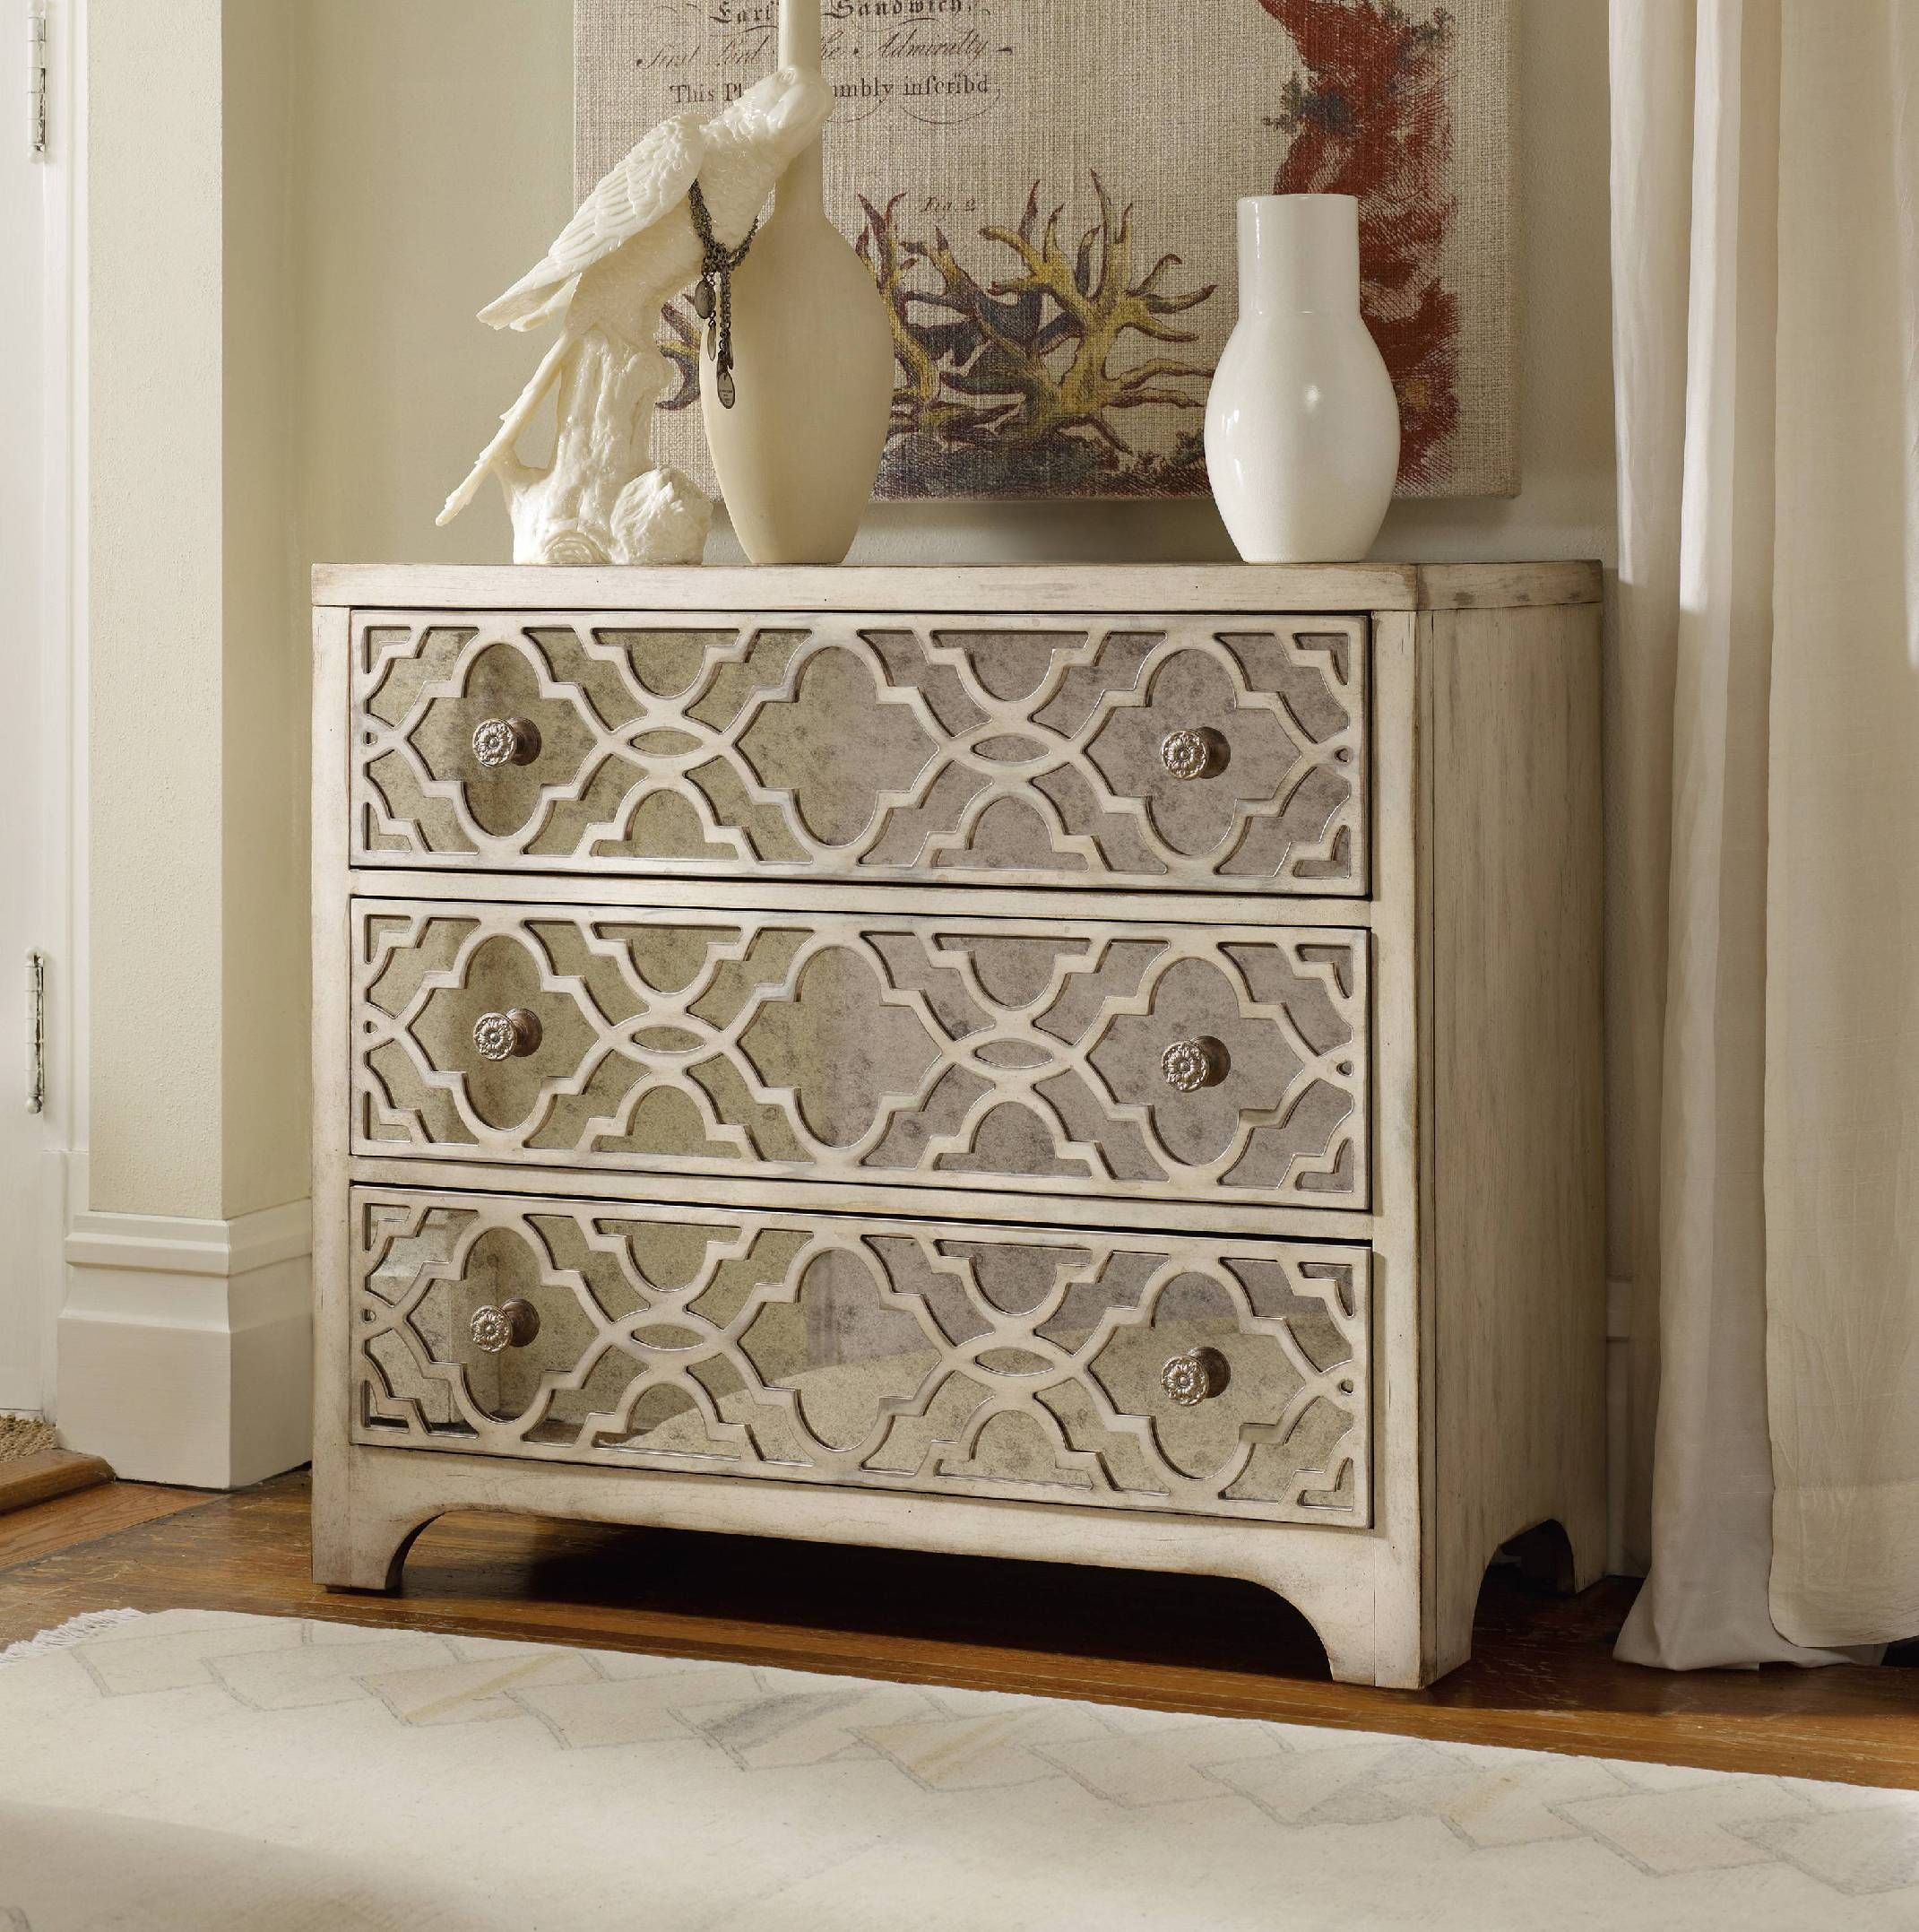 Awesome Hooker Furniture Living Room Sanctuary Fretwork Chest Pearl Essence  3023 85001